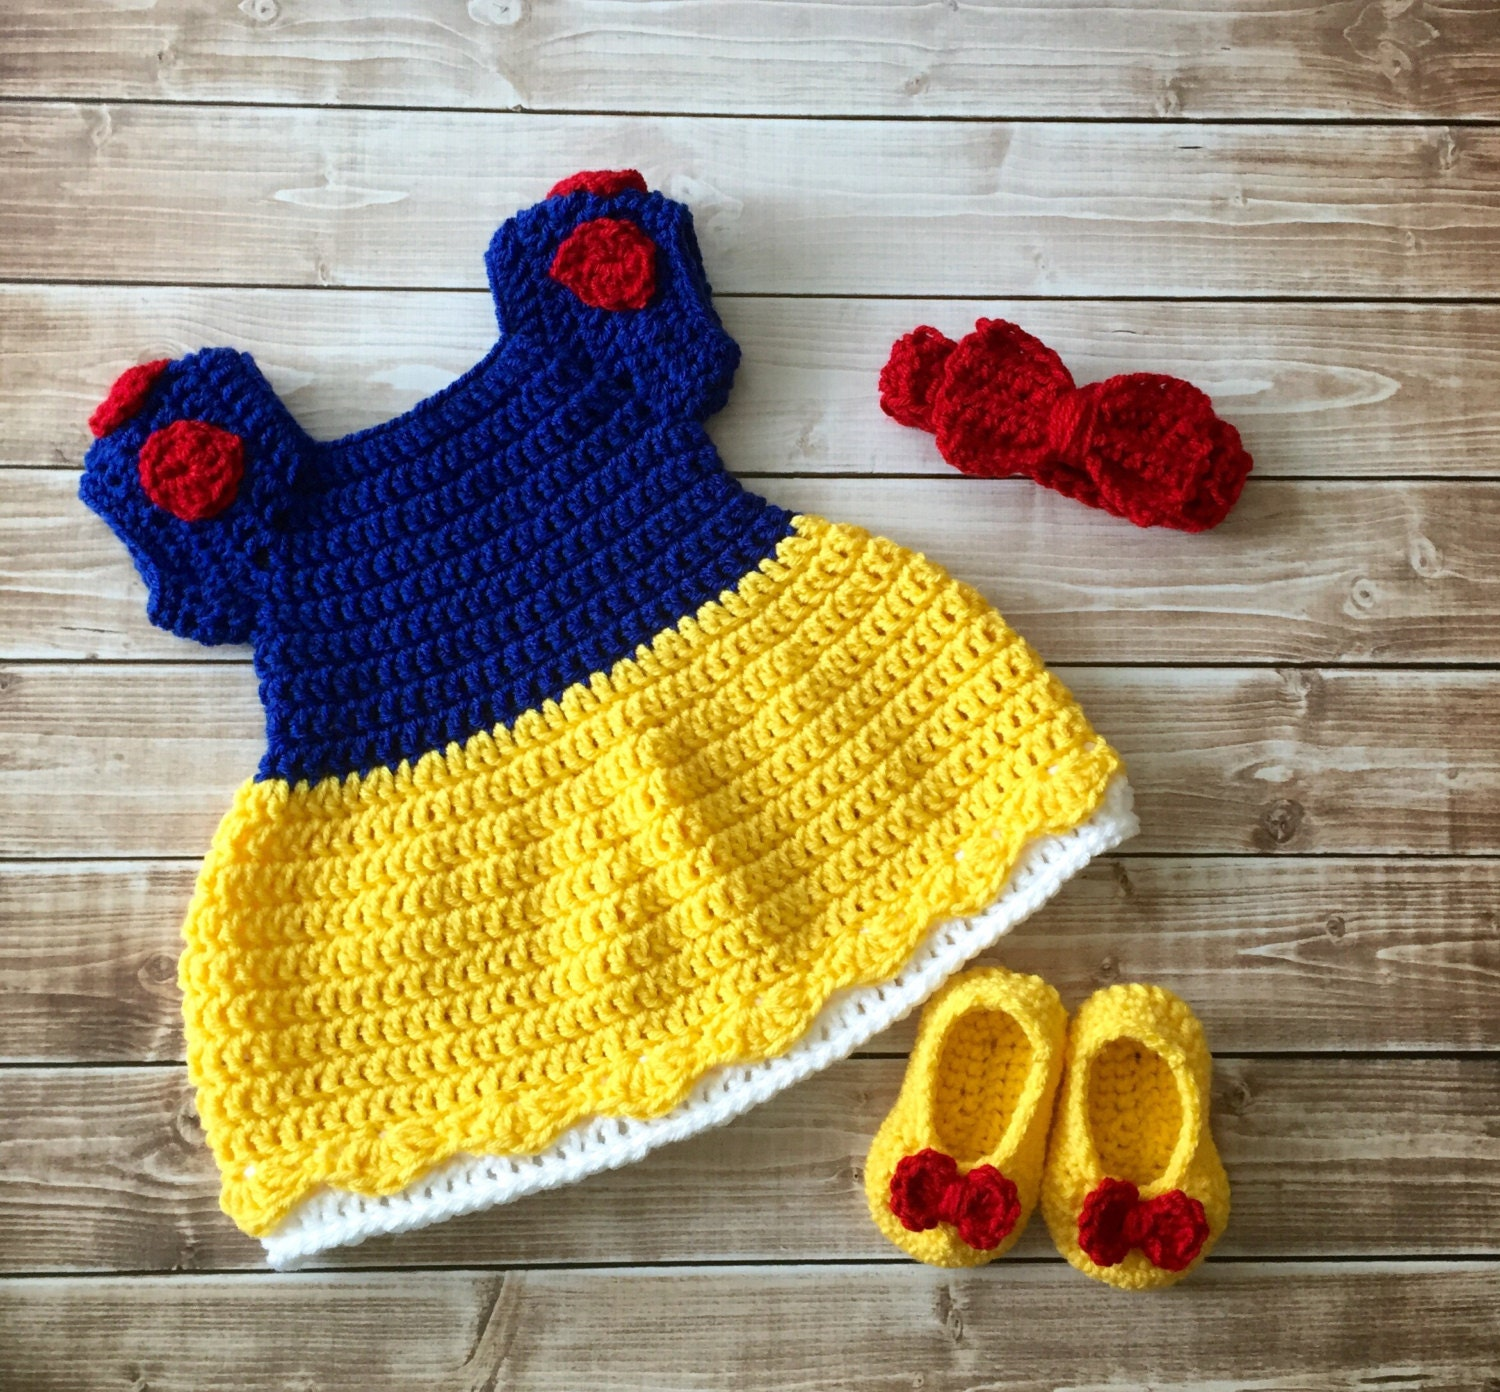 Free Crochet Pattern For Snow White Dress : Princess Snow White Inspired Costume/Crochet Princess Snow